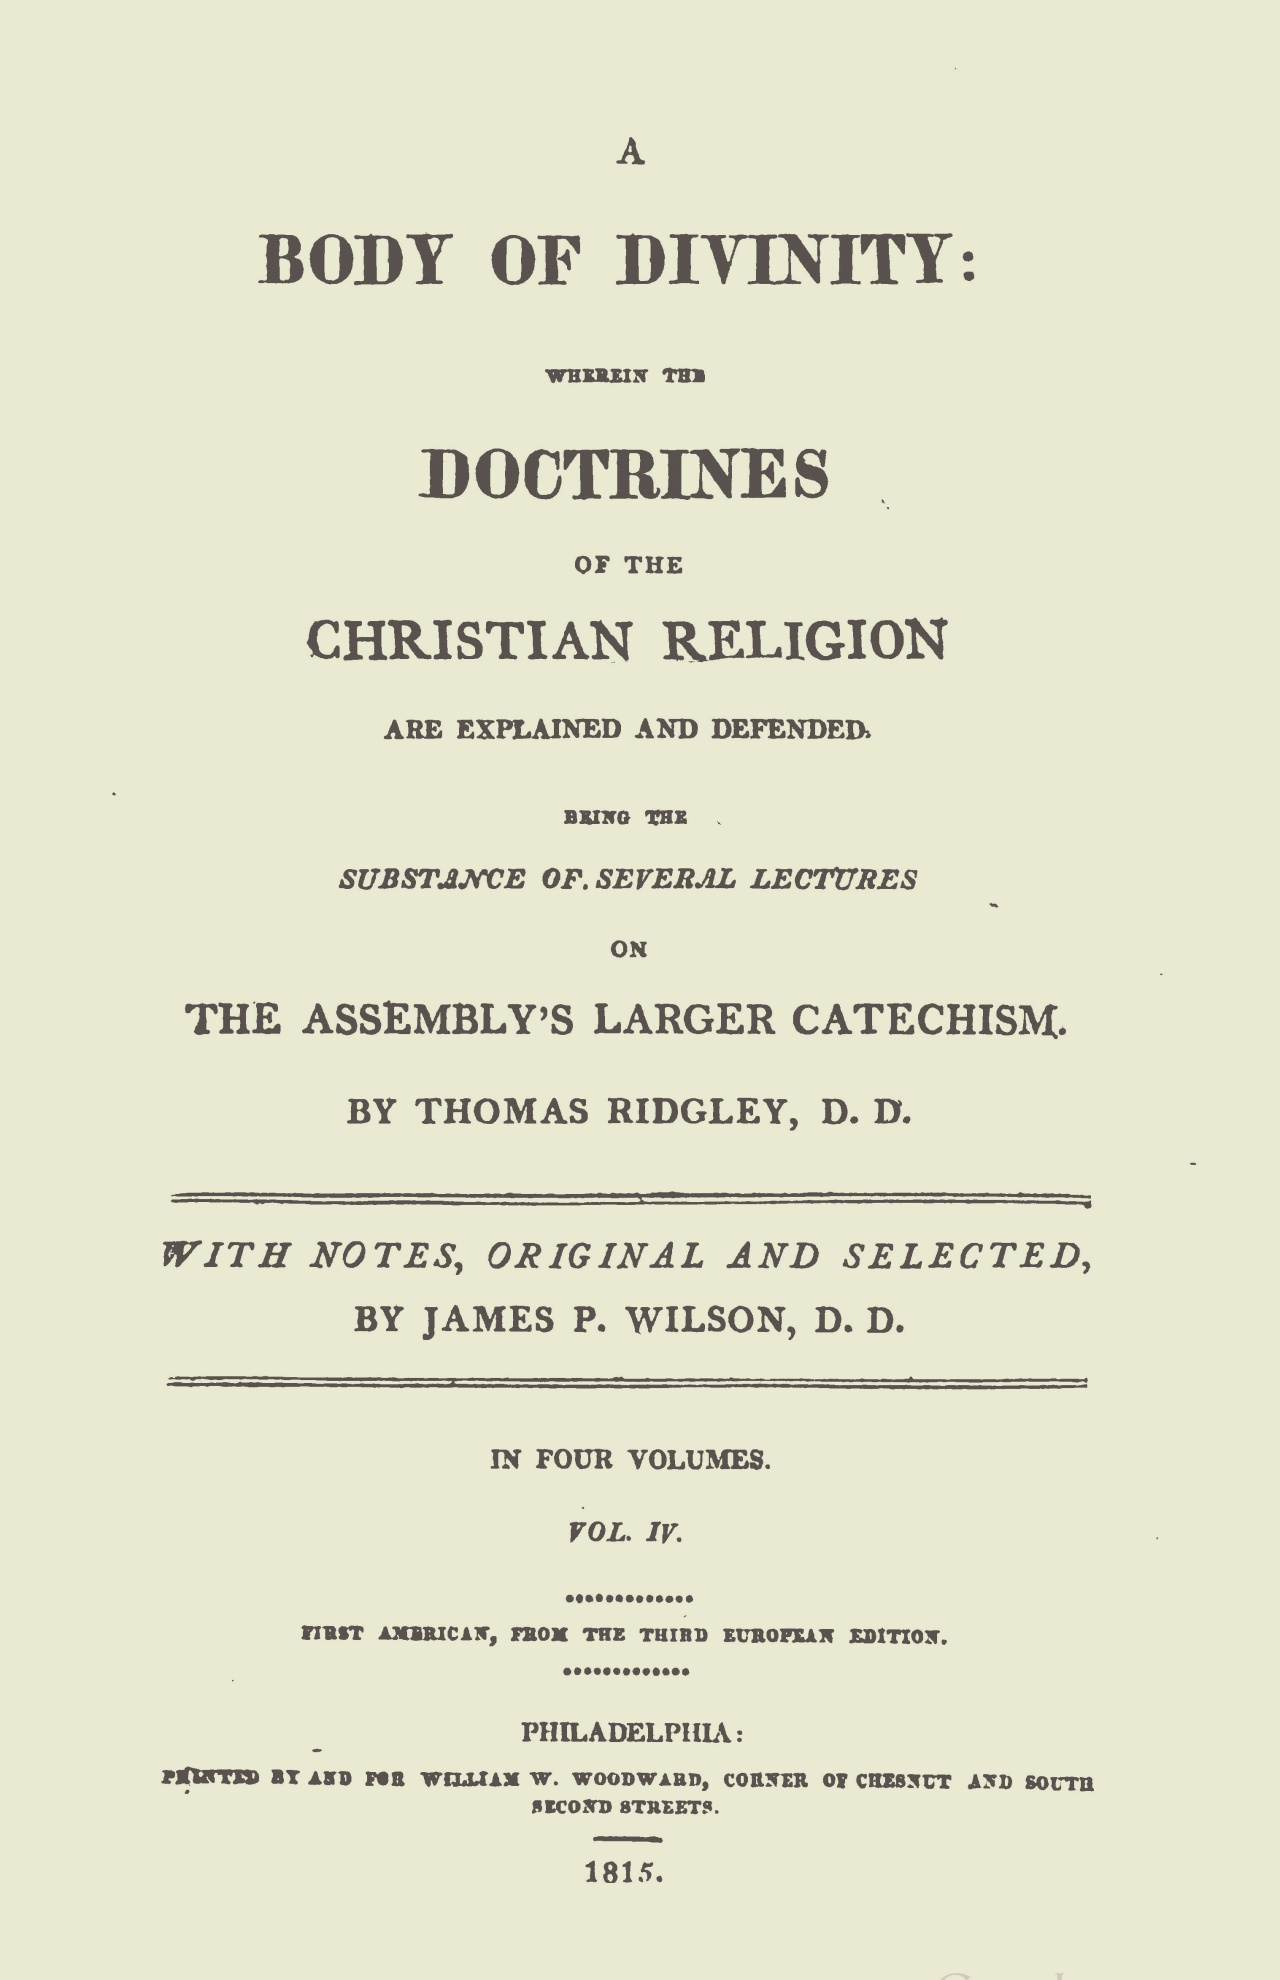 Wilson, Sr., James Patriot, Notes on Ridgley's Body of Divinity, Vol. 4 Title Page.jpg